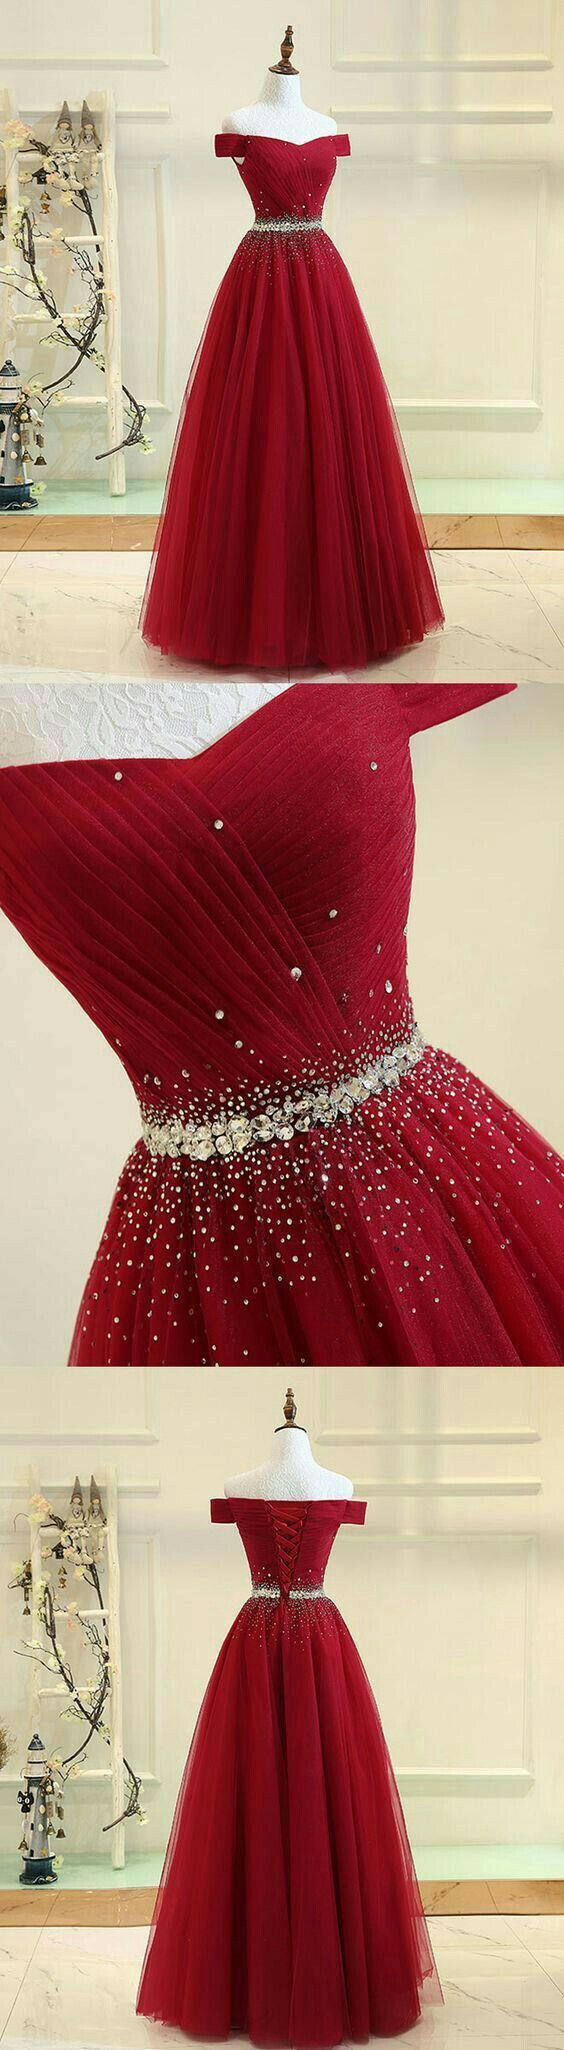 Pin by sierra long on outfit ideas in pinterest dresses